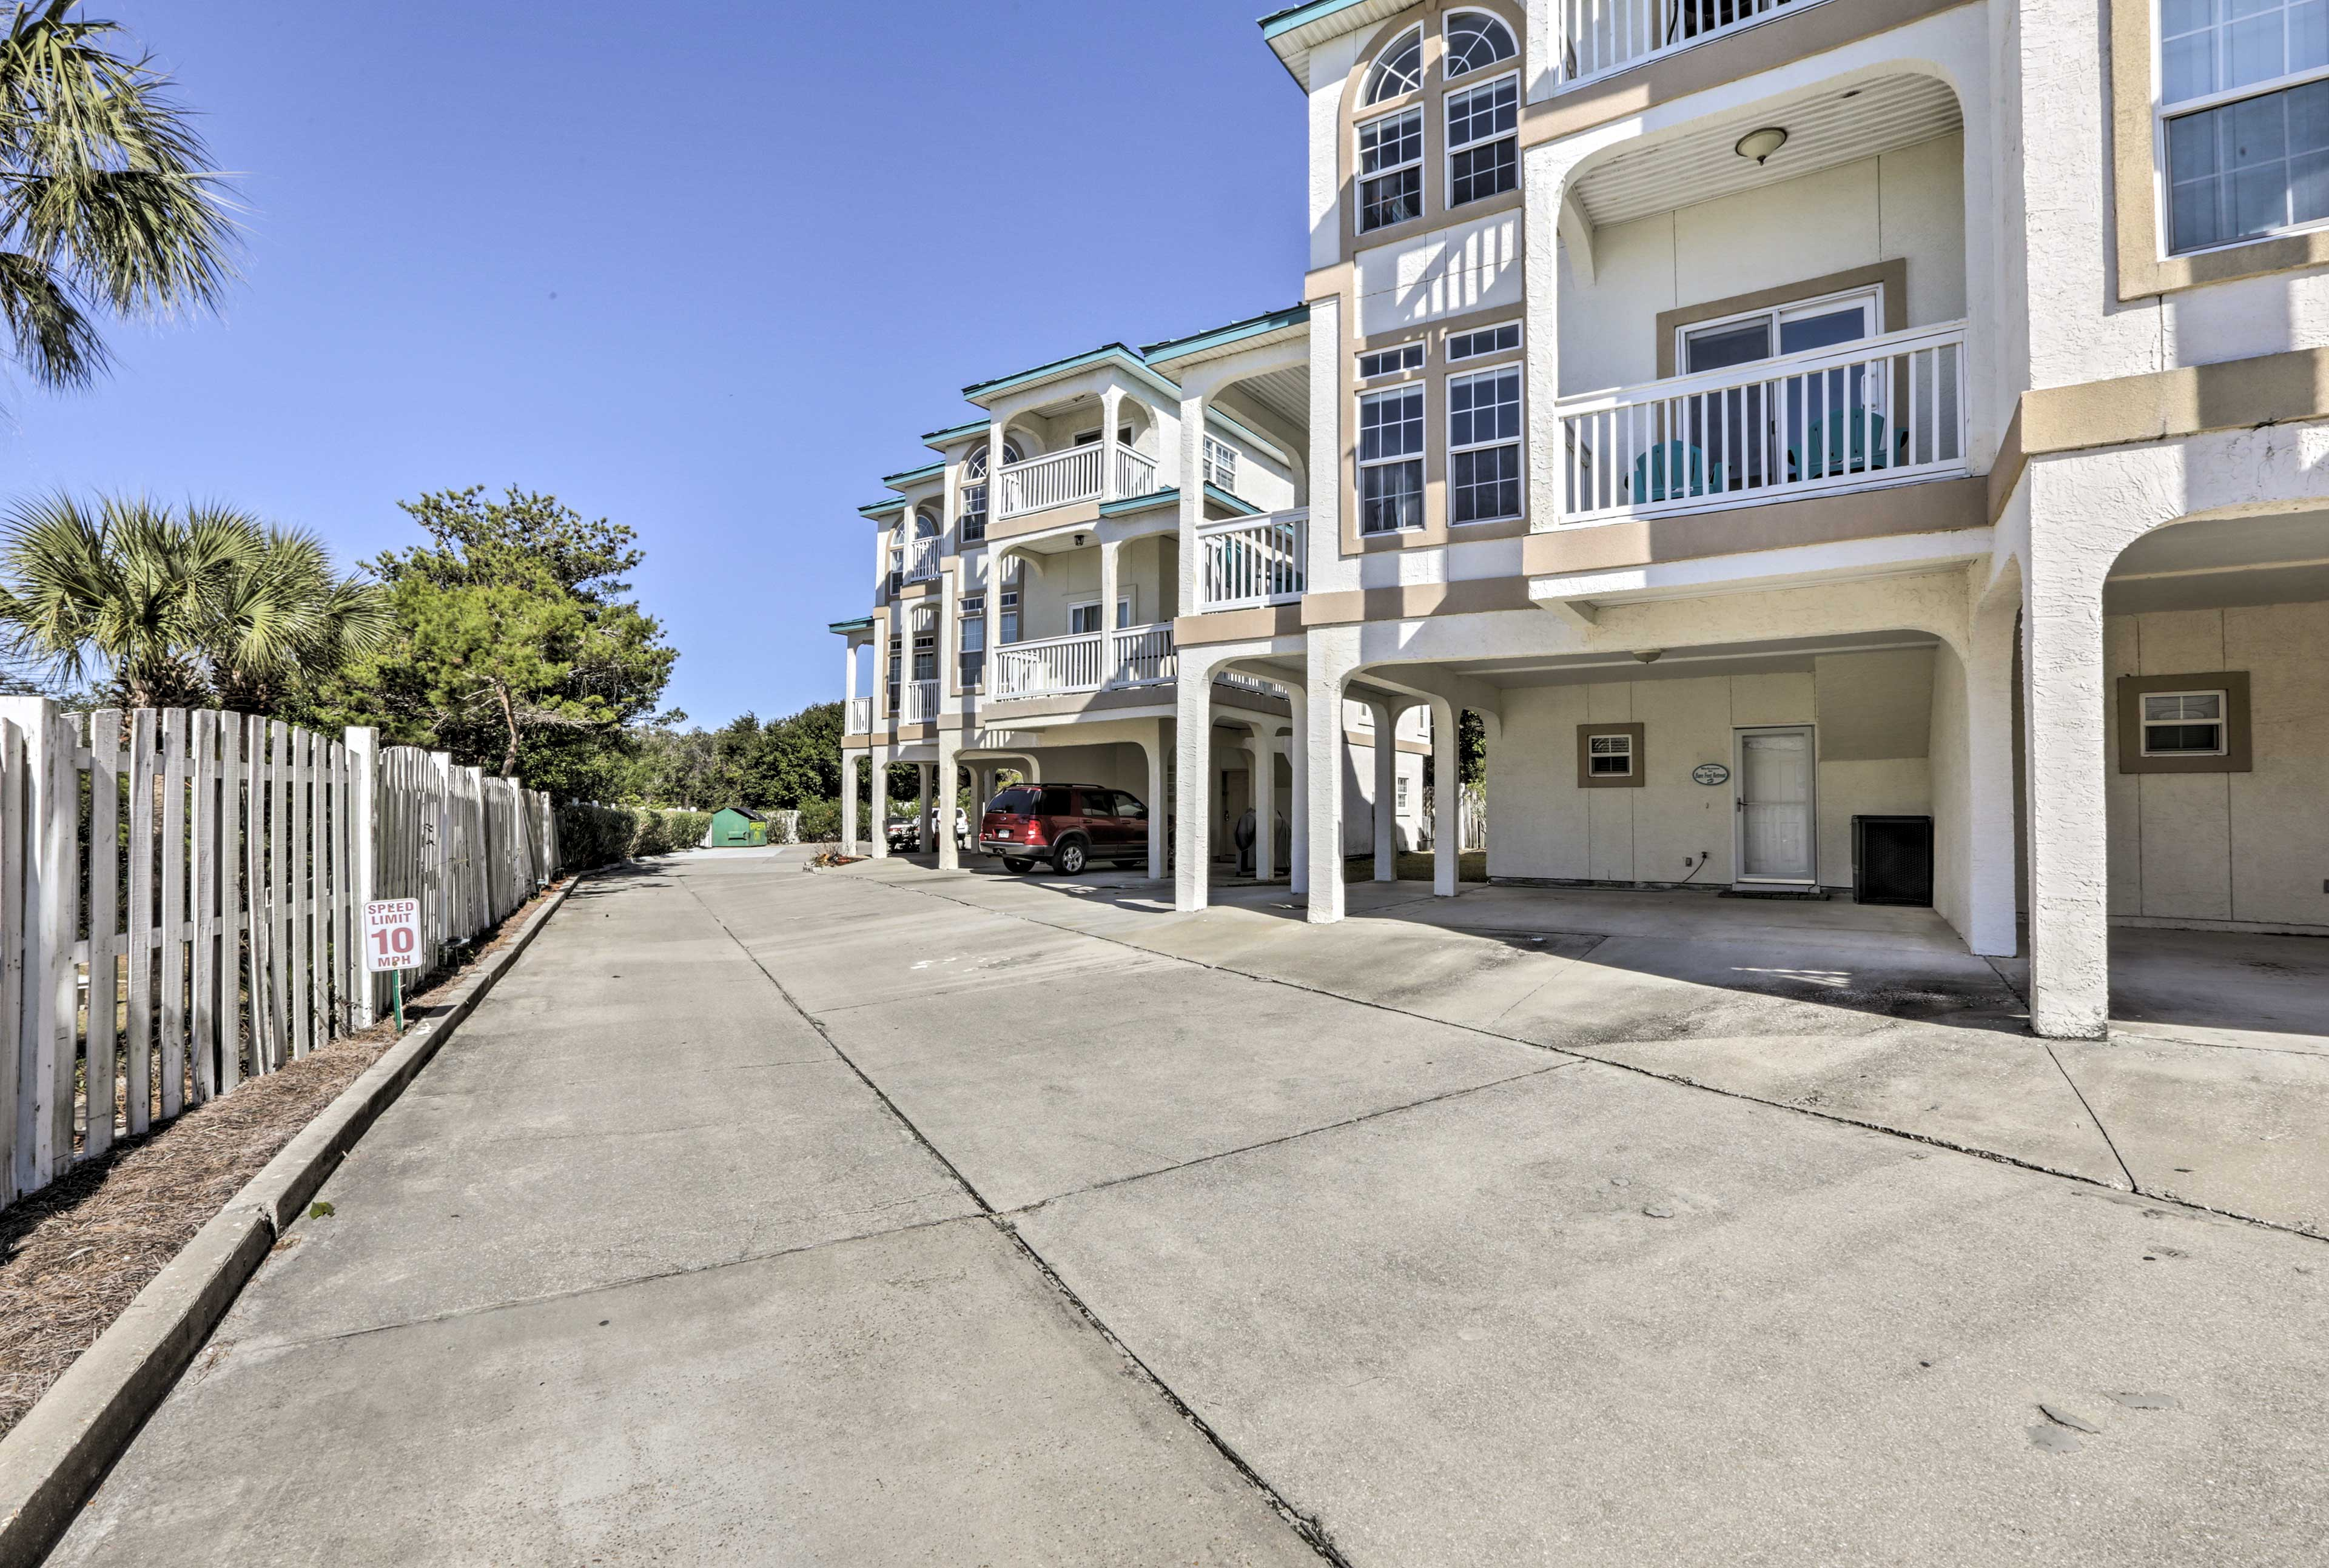 This home provides access to the best of the Panhandle and the beach.